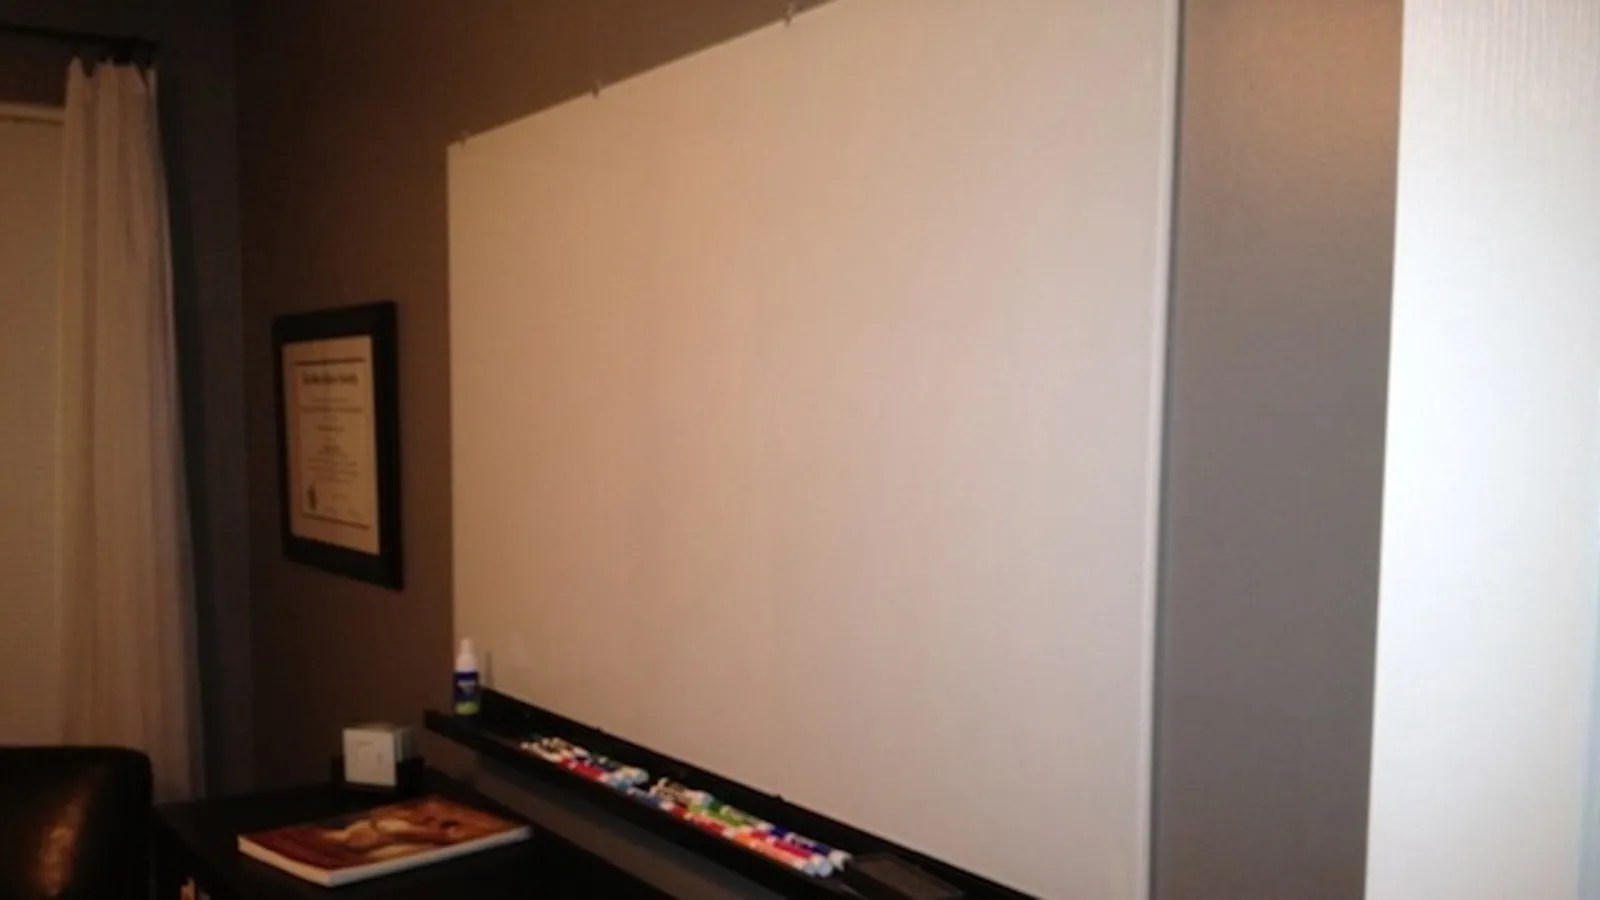 Turn A Wall Into A Whiteboard This Diy Glass Whiteboard Turns A Whole Wall Into A Space For